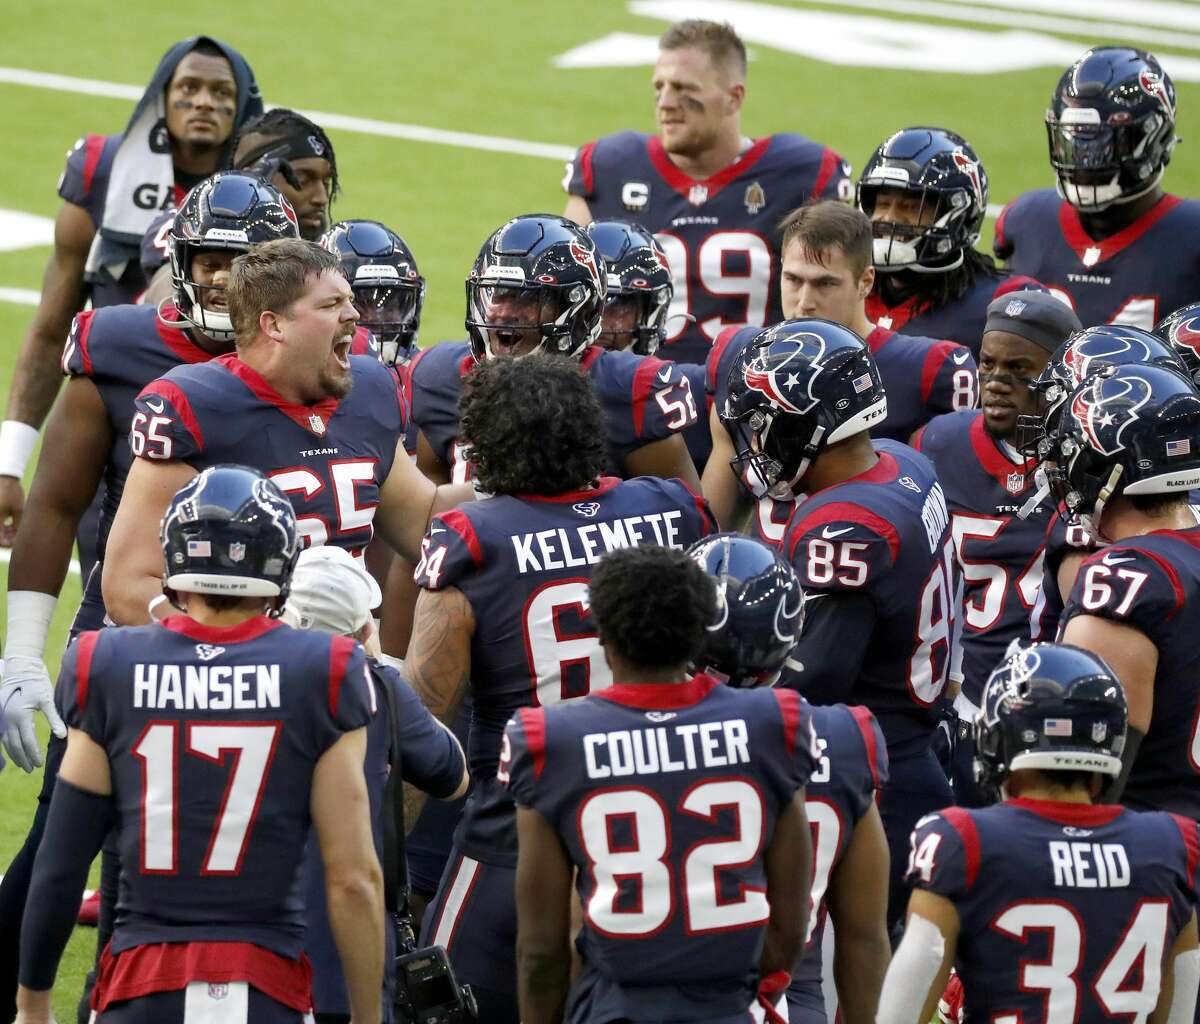 Houston Texans offensive guard Greg Mancz (65) fires up the team in a huddle after warm ups before the start of an NFL football game Sunday, Jan. 3, 2021, at NRG Stadium in Houston .